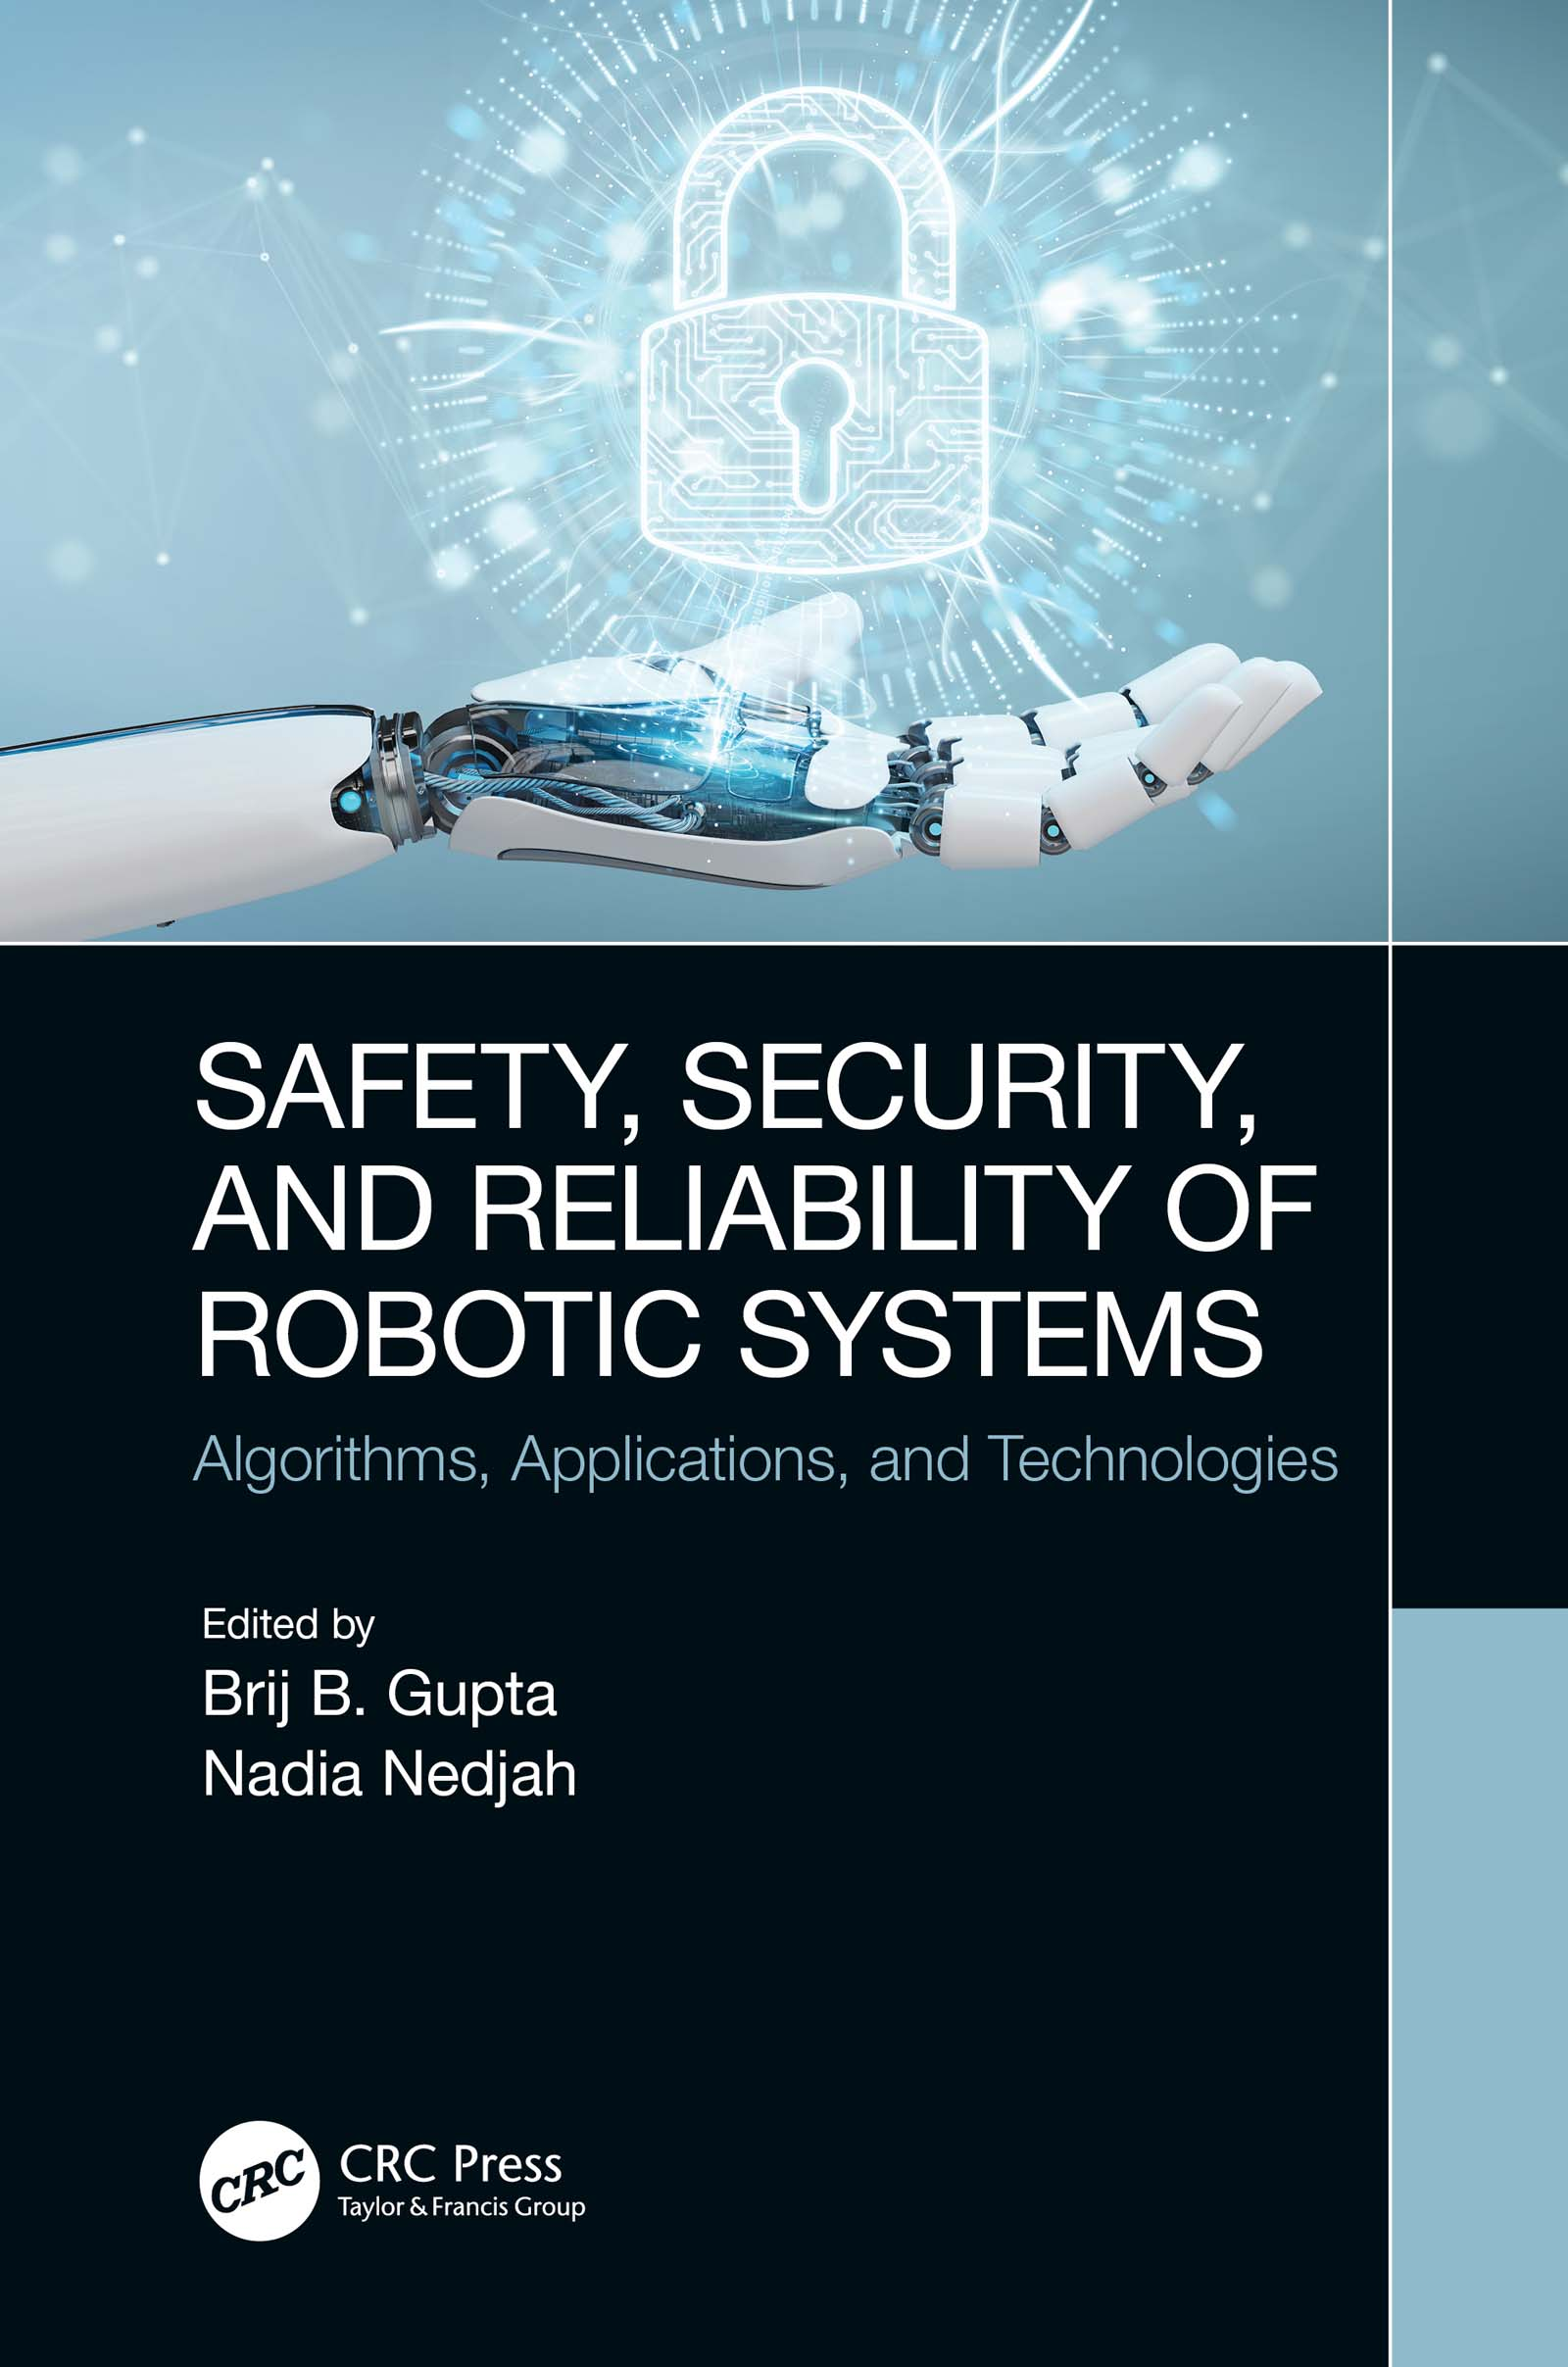 The evolution of robotic systems